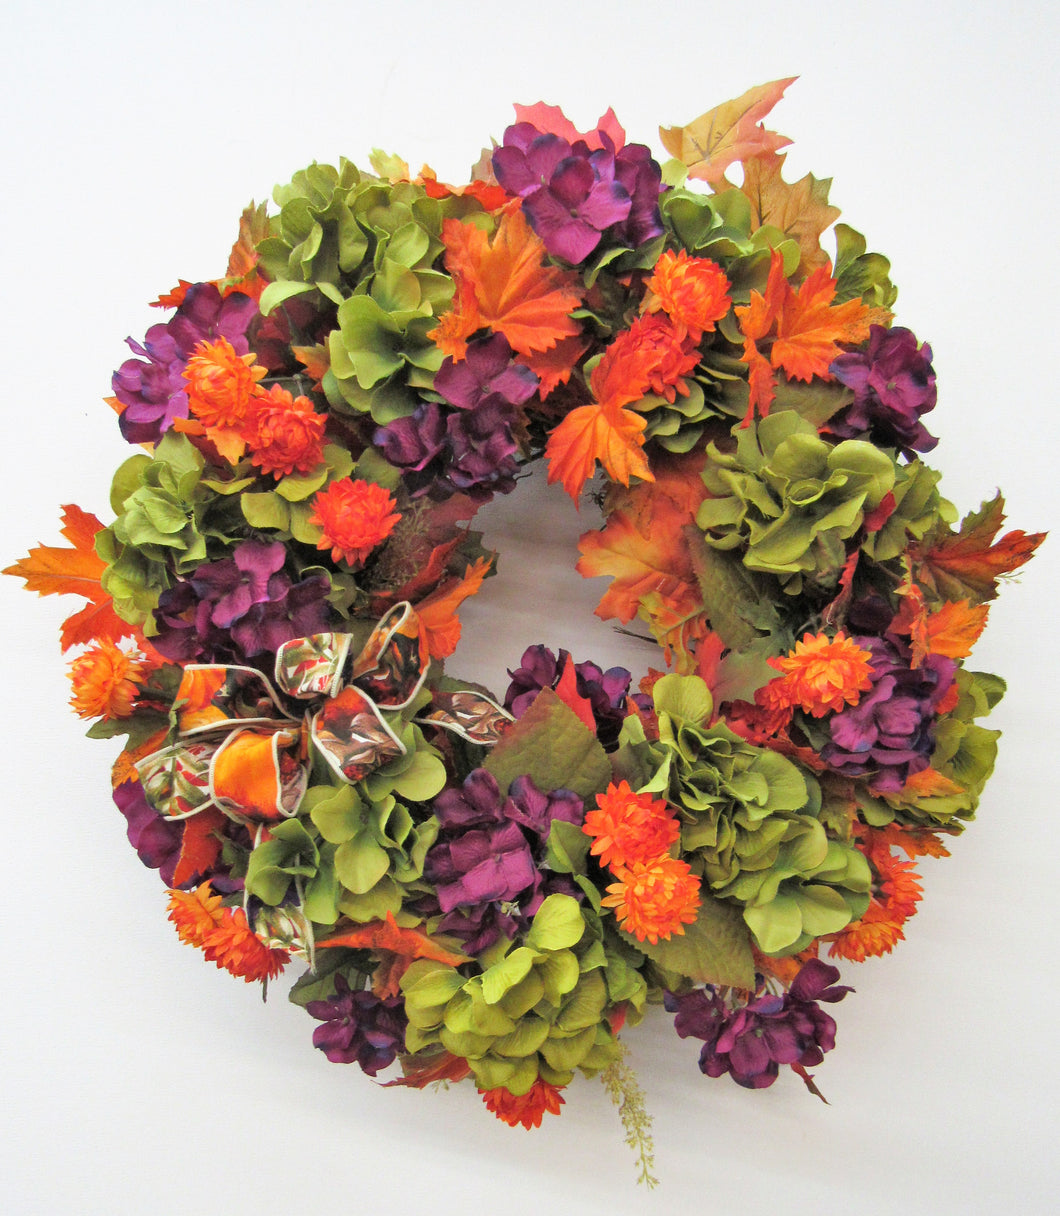 Lime and Purple Hydrangea Silk Floral Fall Wreath with Flame Strawflower/Harv29 - April's Garden Wreath